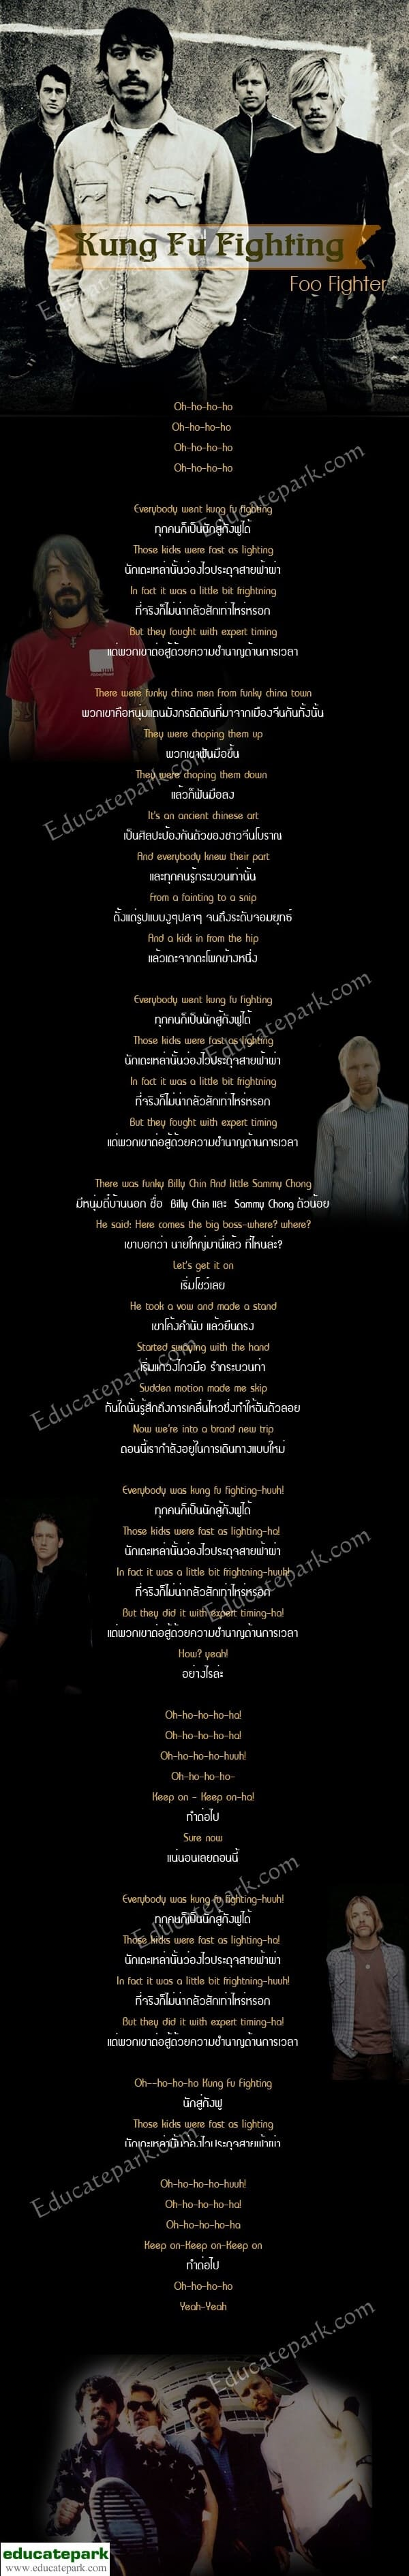 แปลเพลง Kung Fu Fighting - Foo Fighter